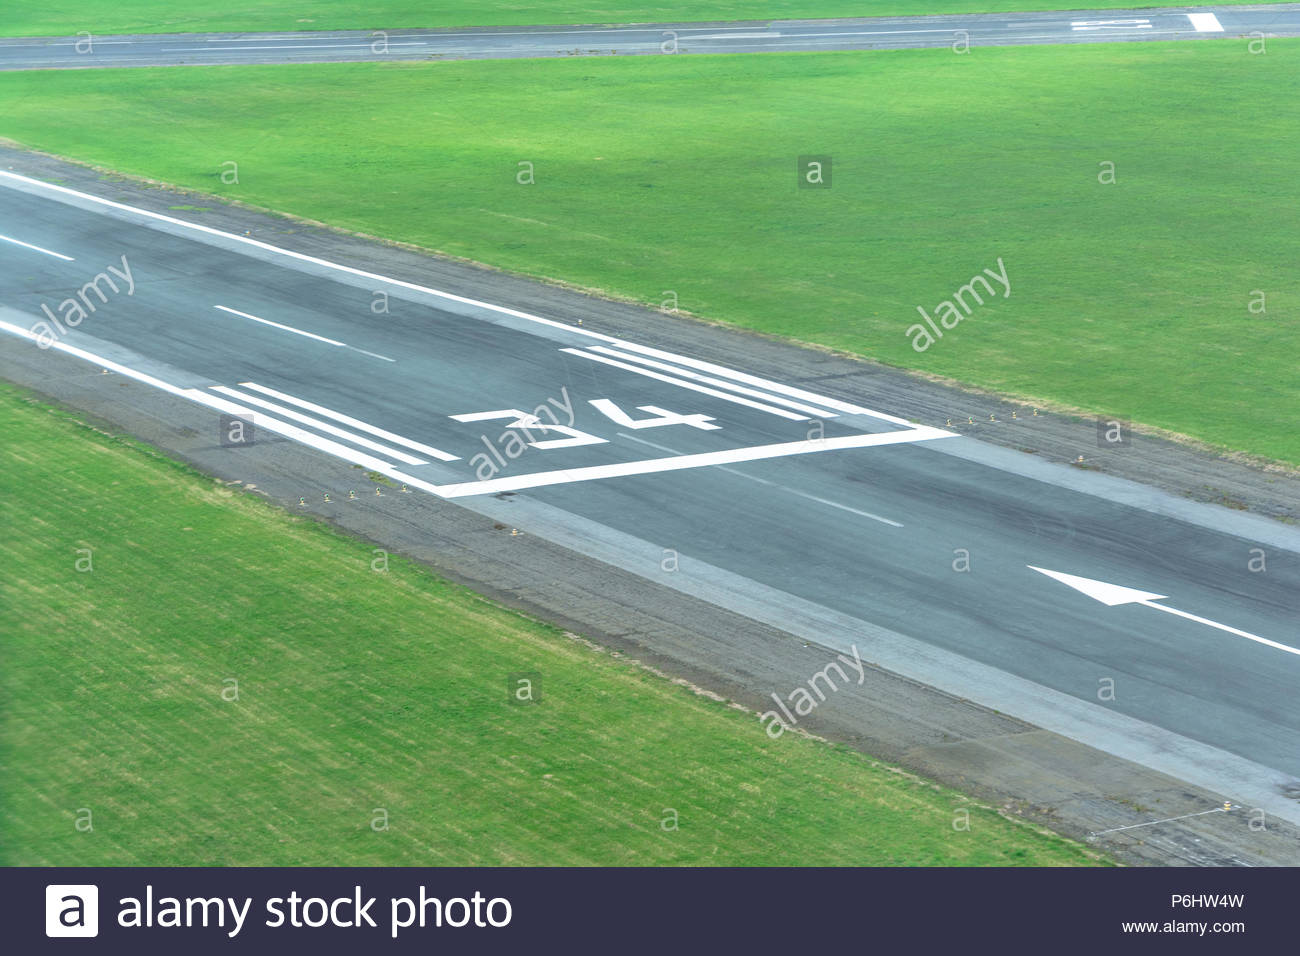 Runway 34 is used for both take off and landing of light aircraft - Stock Image